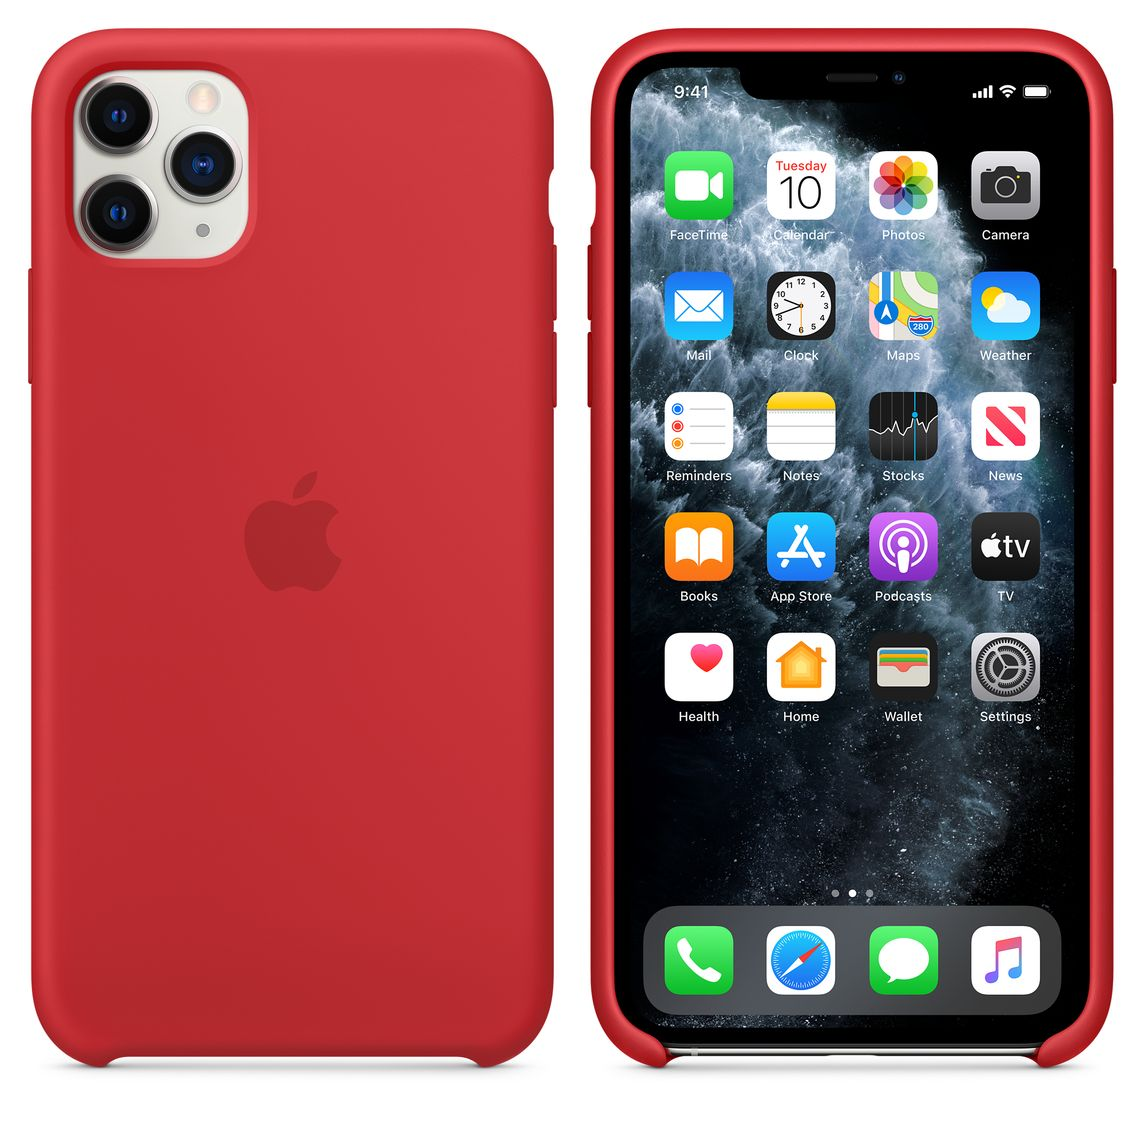 Iphone 11 Pro Max Silicone Case Product Red Apple Ca This iphone 11 is certified refurbished. iphone 11 pro max silicone case product red